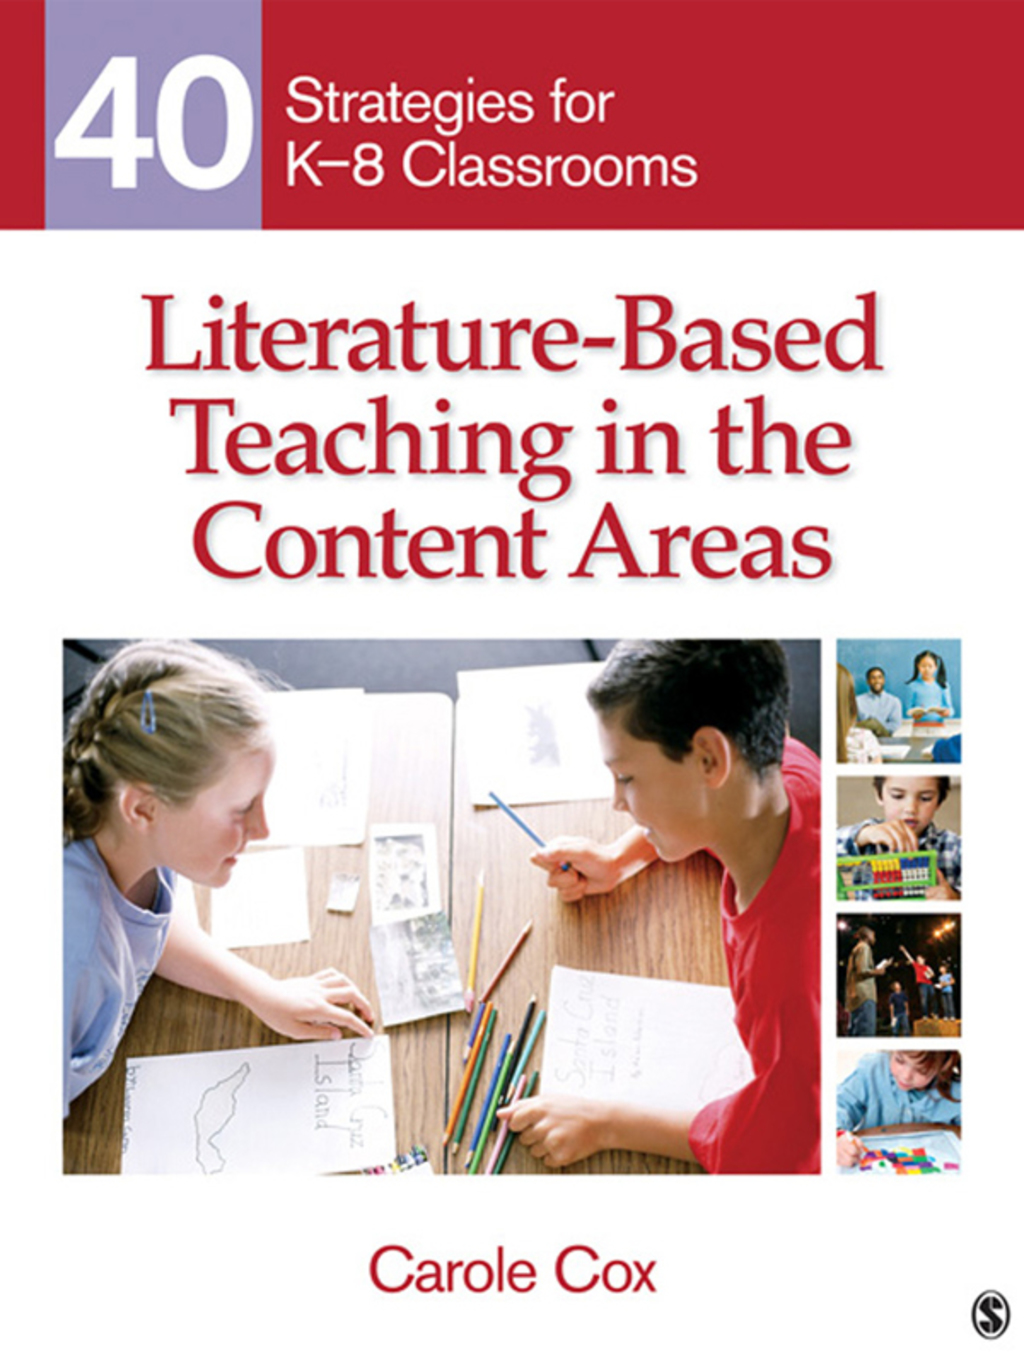 Literature-Based Teaching in the Content Areas: 40 Strategies for K-8 Classrooms (ebook) eBooks